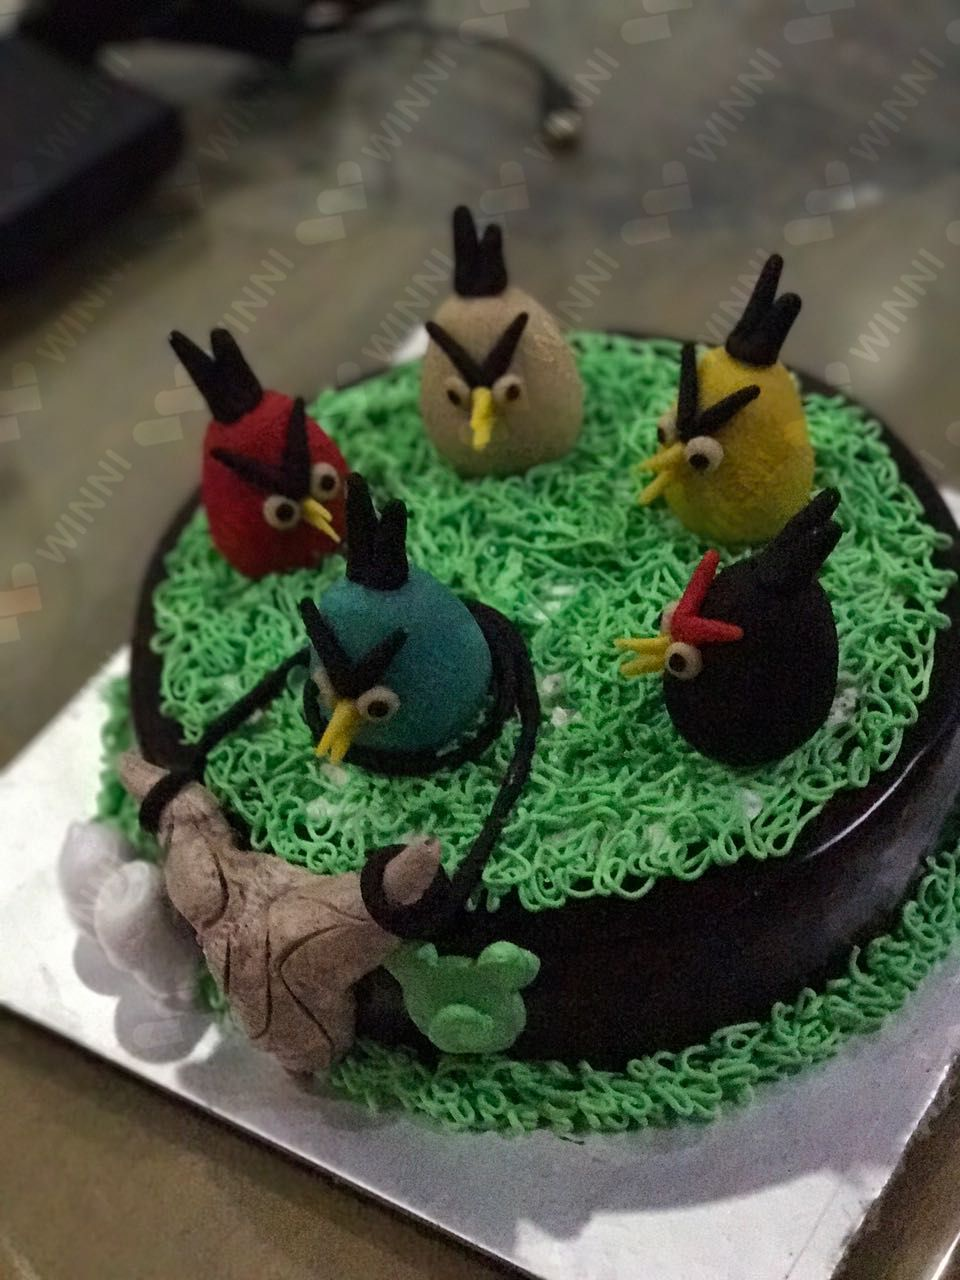 Get The Best Kidsthemecake From Winni Do Have Look Httpswww